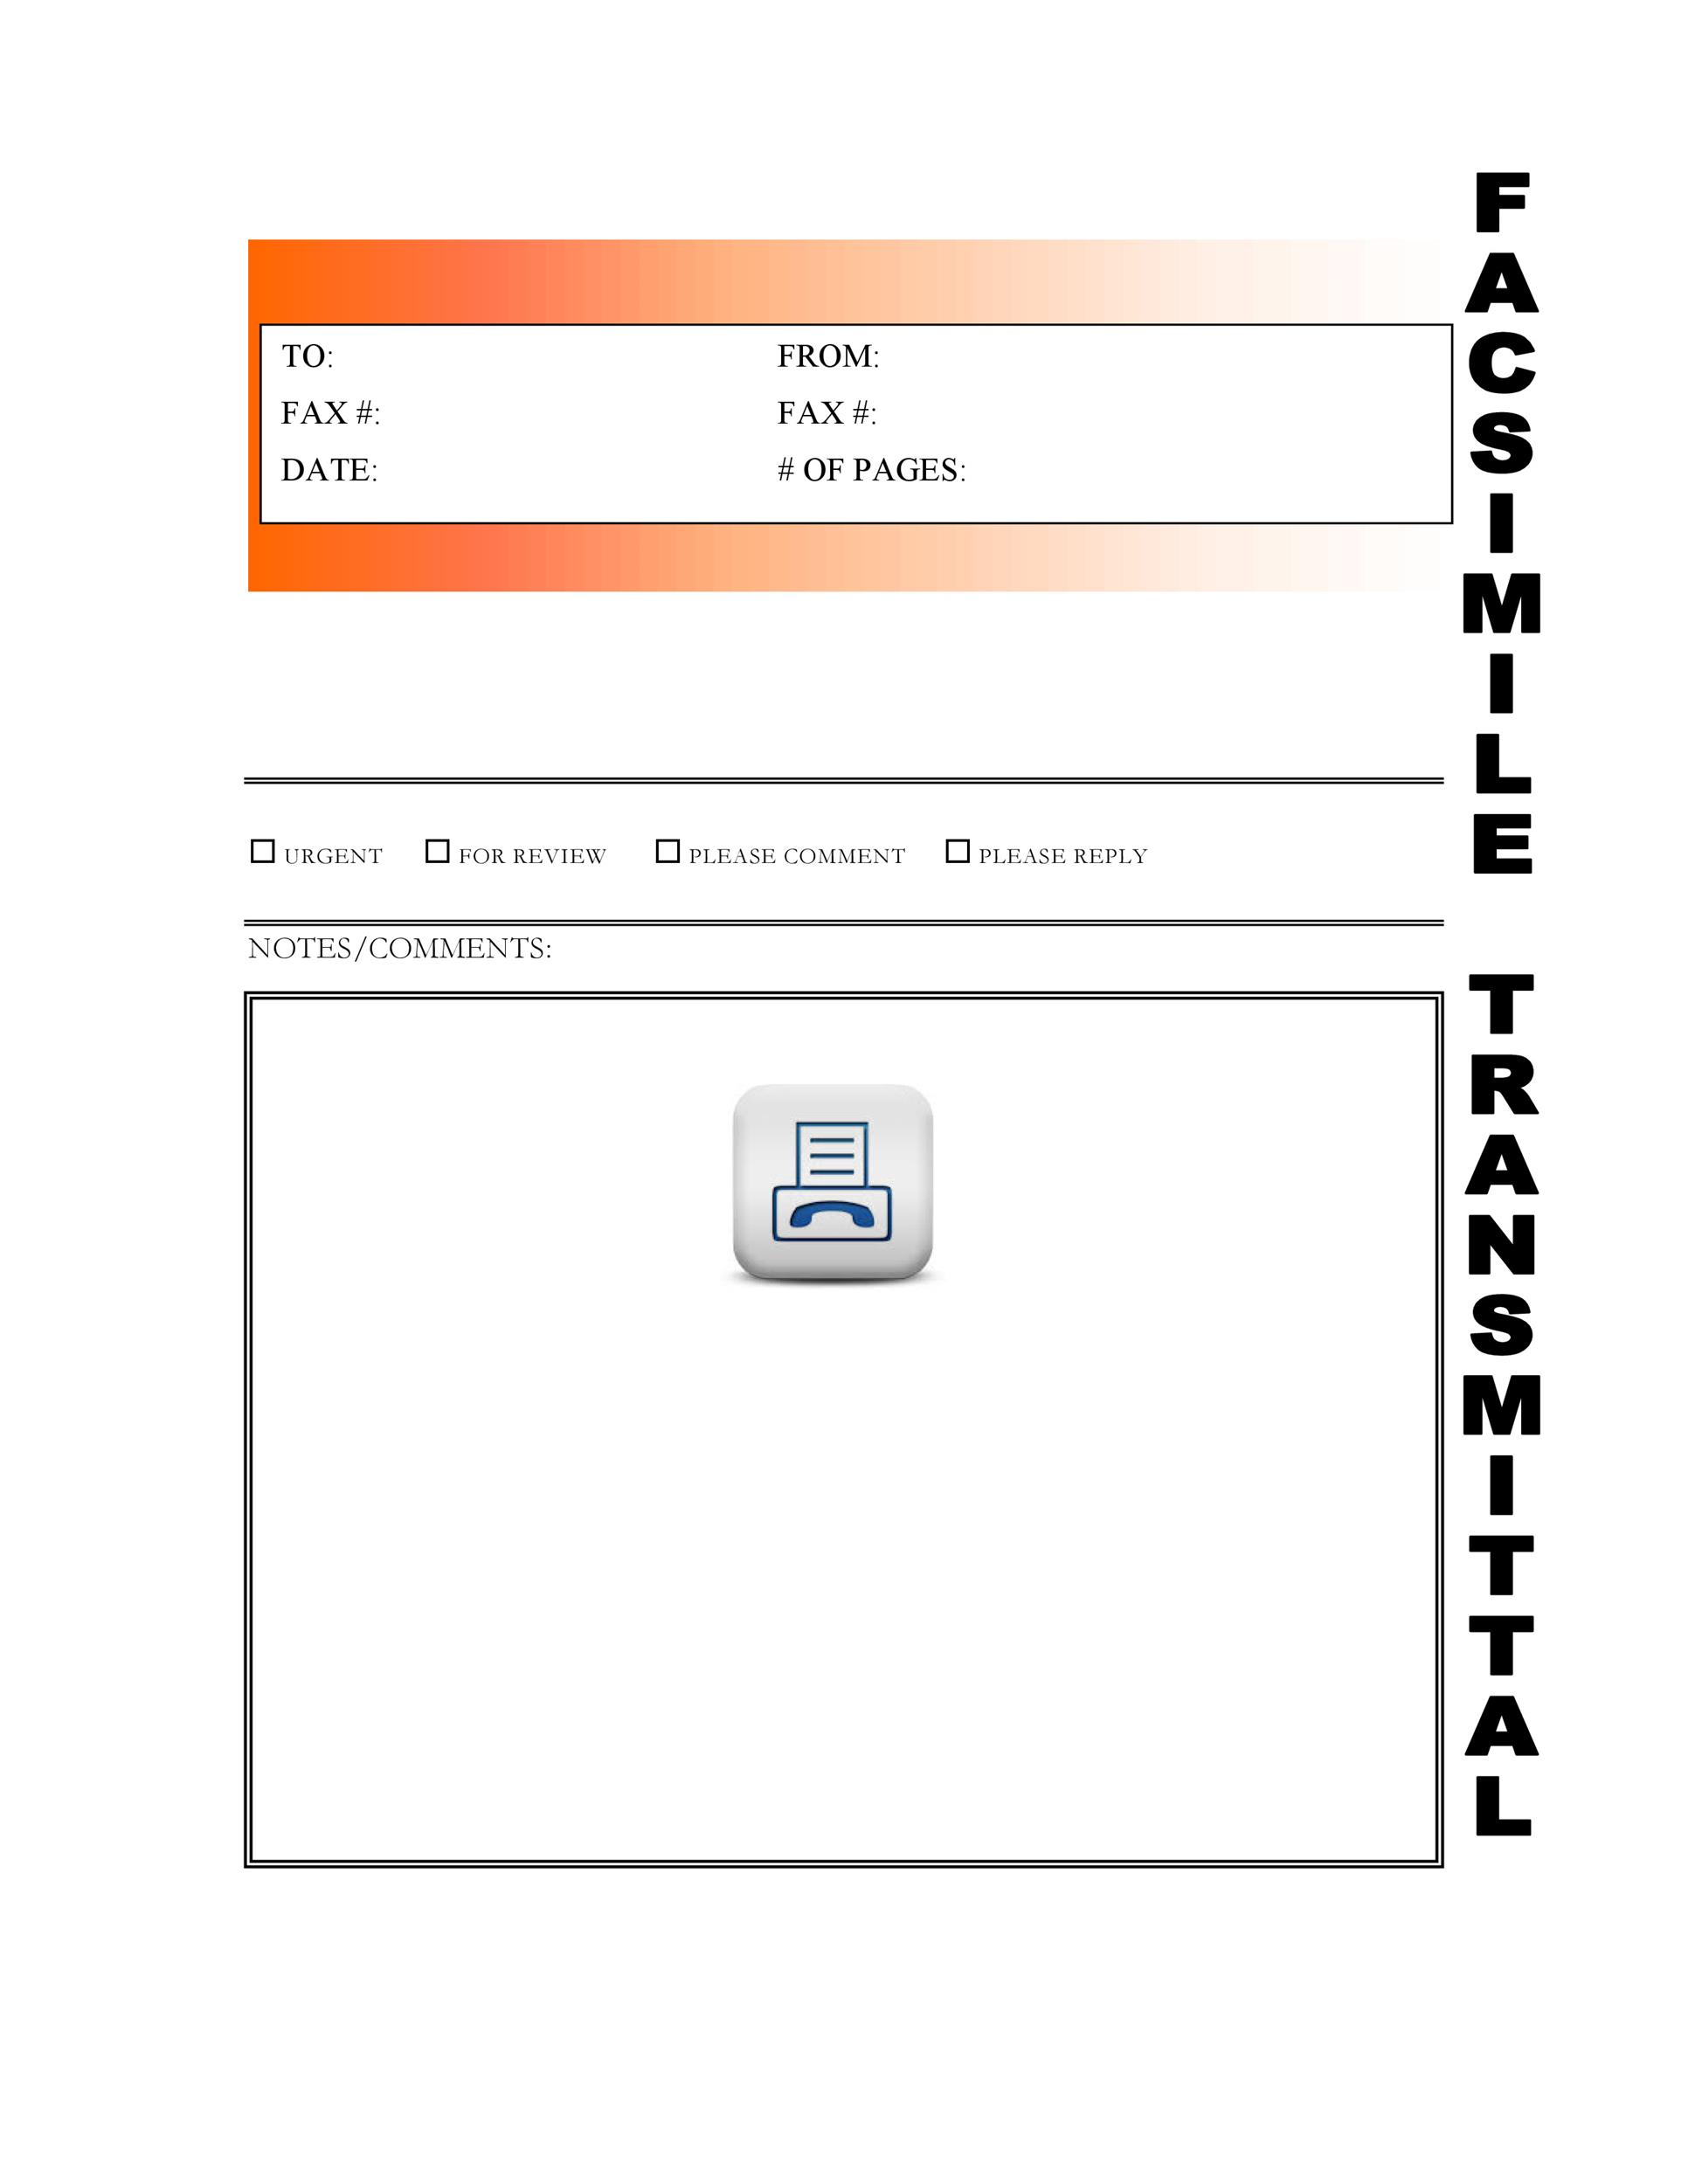 Printable Fax Cover Sheet Template 33  Free Cover Sheet